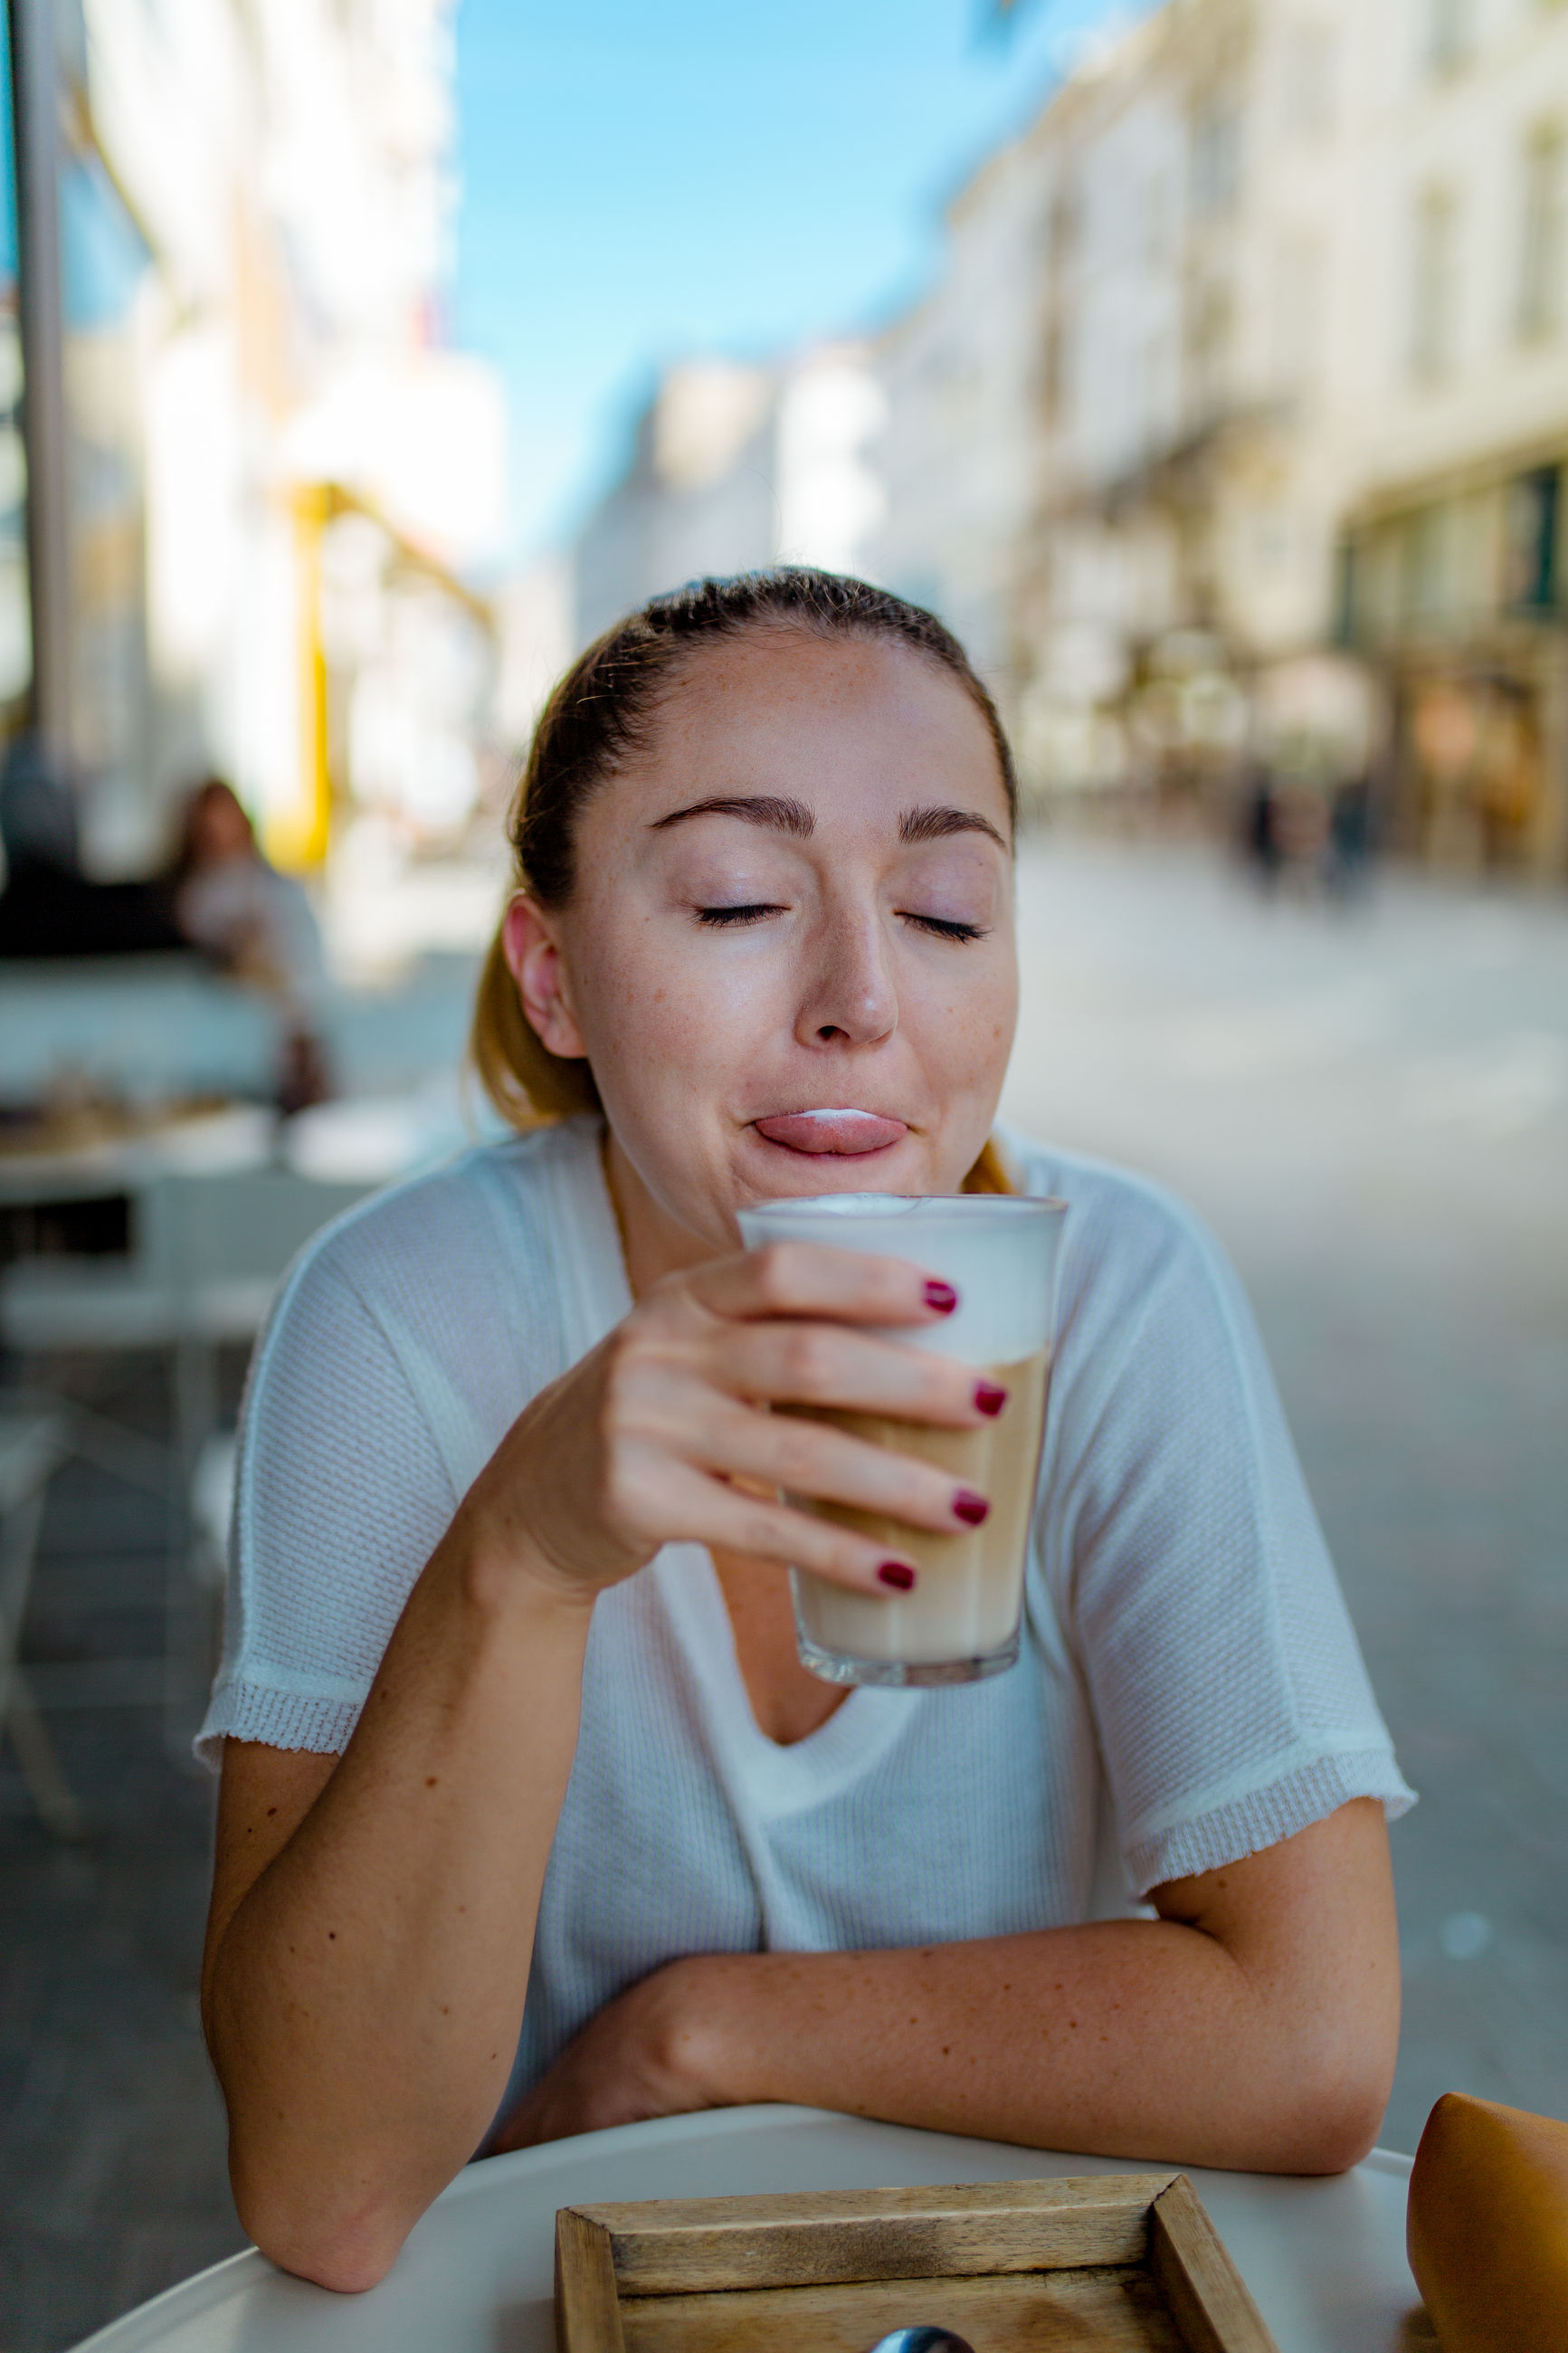 food and drink, drink, one person, refreshment, real people, coffee, focus on foreground, cup, coffee - drink, drinking, lifestyles, mug, young adult, coffee cup, front view, leisure activity, sitting, young women, table, glass